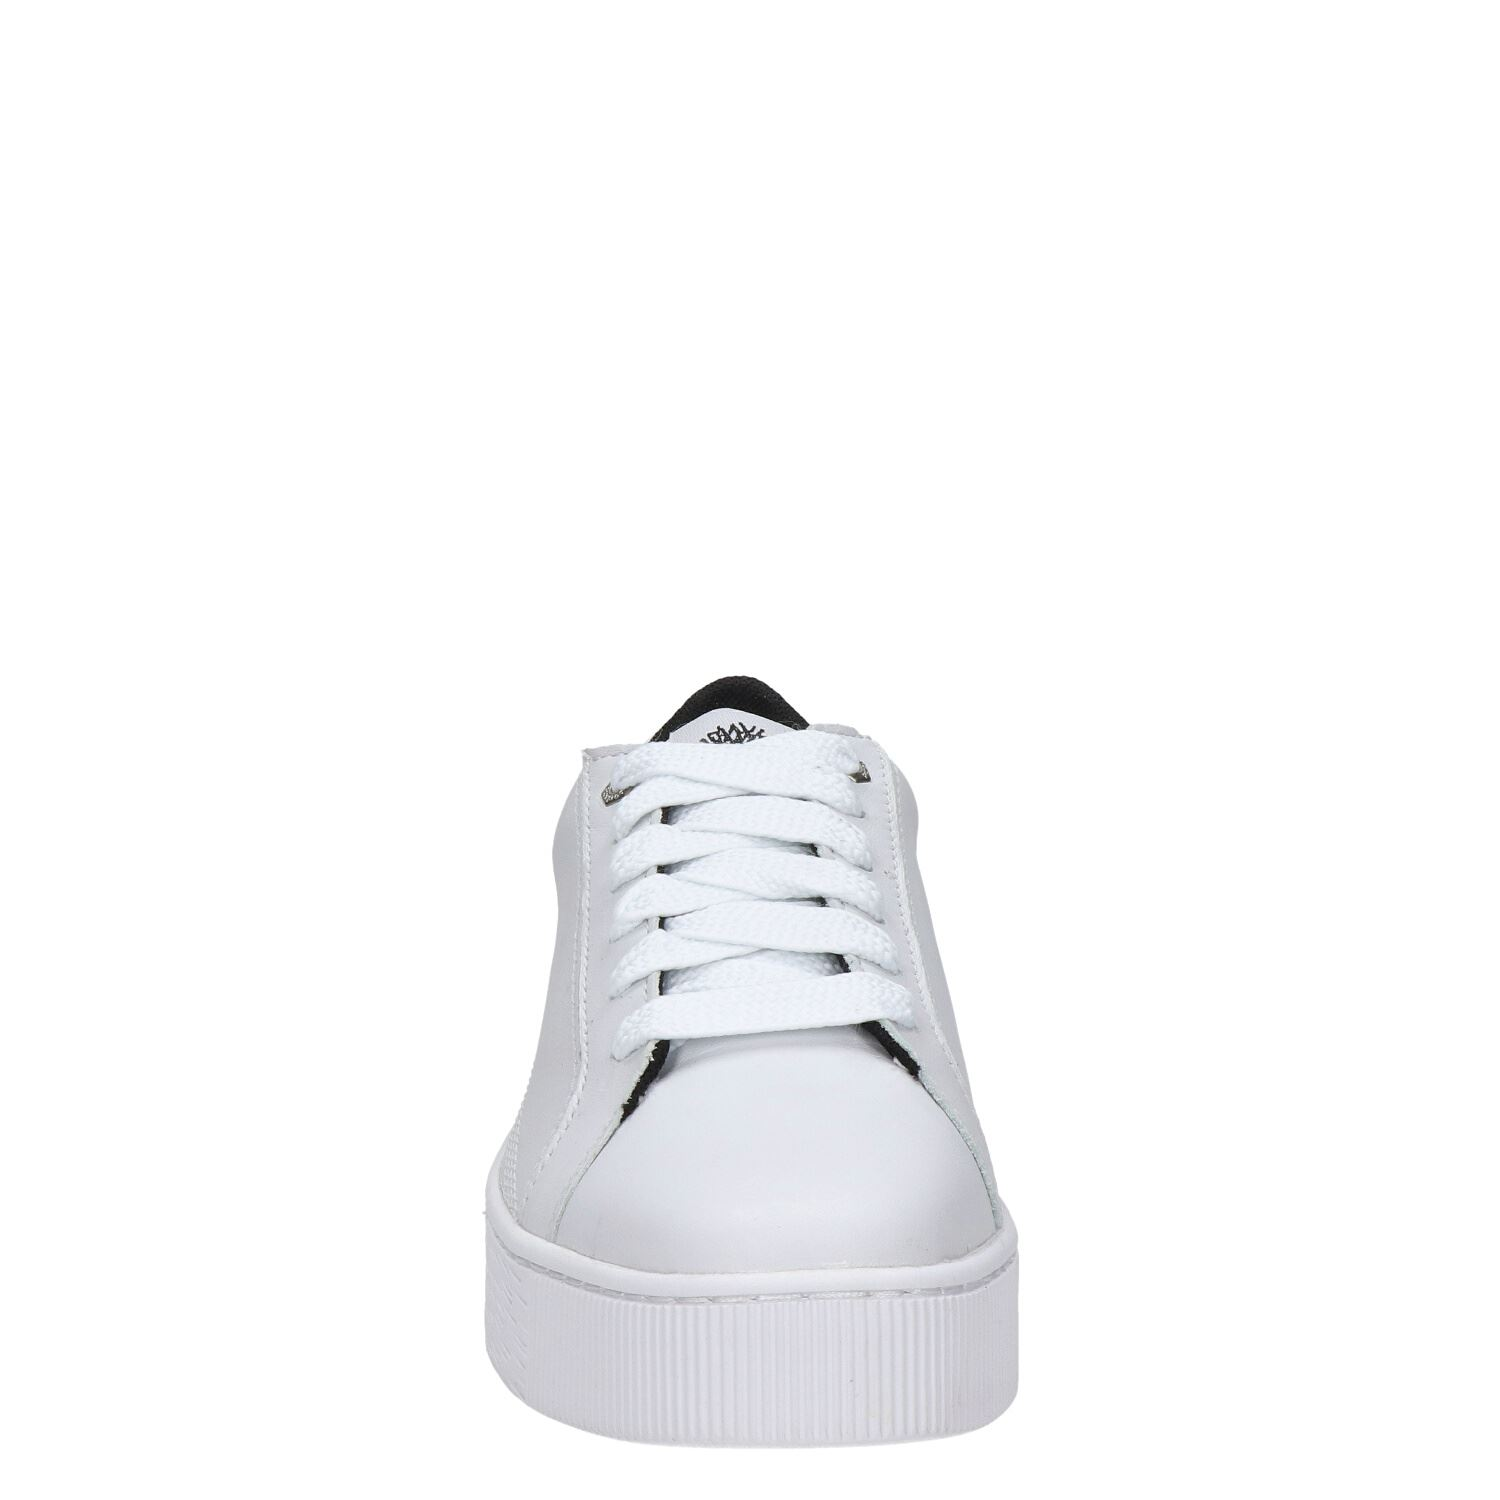 timberland sneakers dames nelson